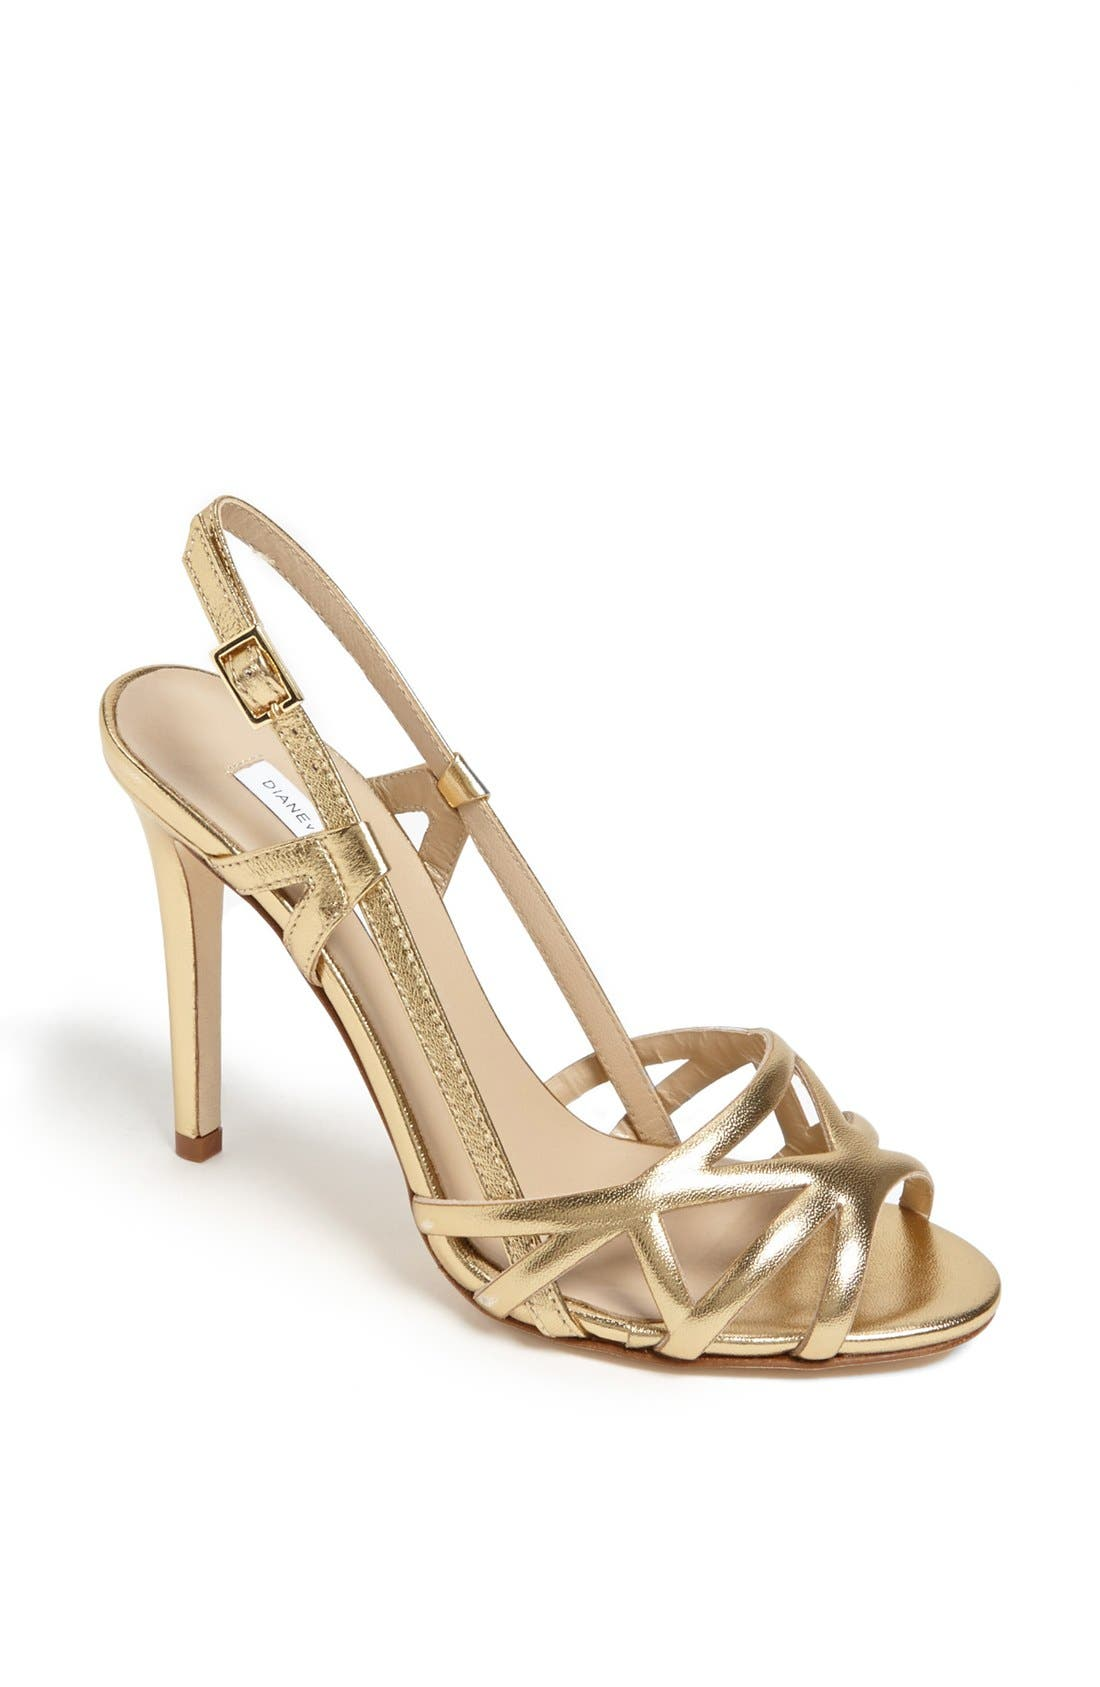 Main Image - Diane von Furstenberg 'Upton' Metallic Leather Sandal